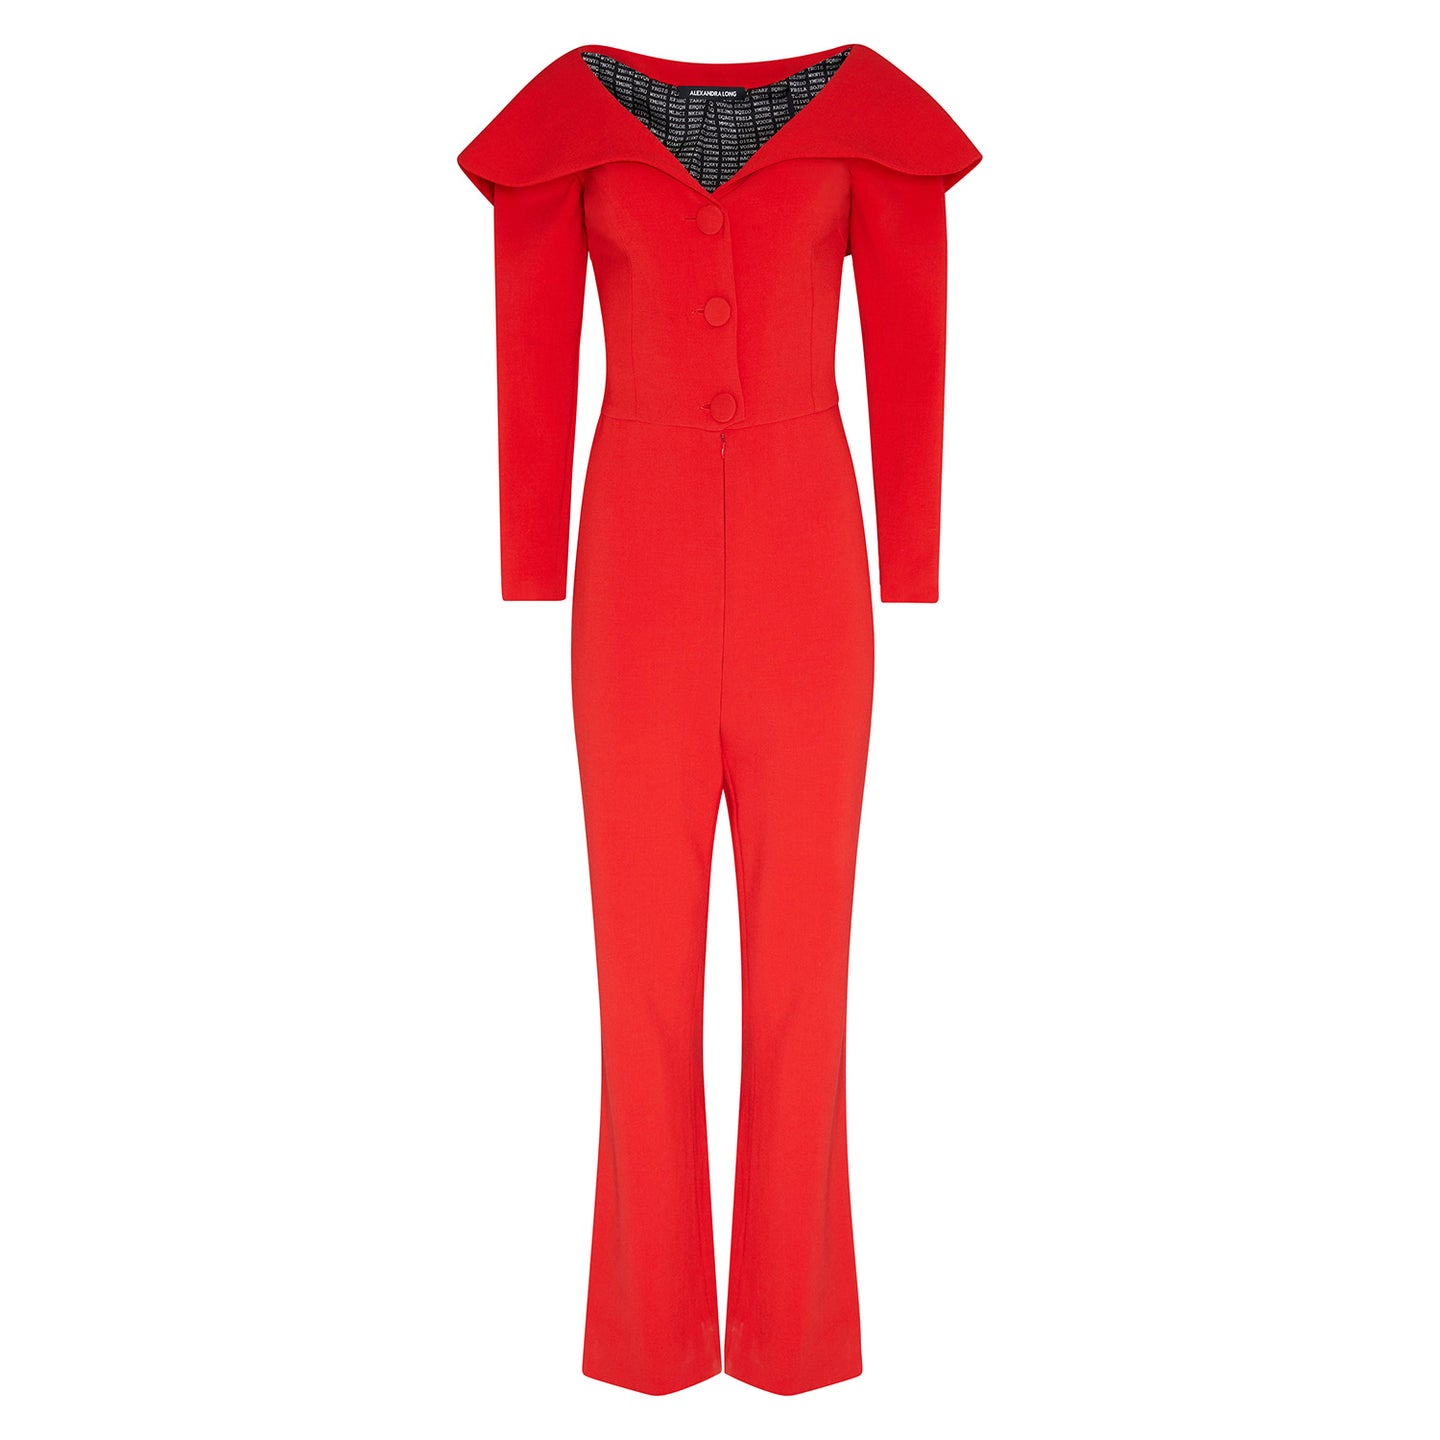 Red Kylie Minogue Jumpsuit by Alexandra Long avalible at Natural x Lab